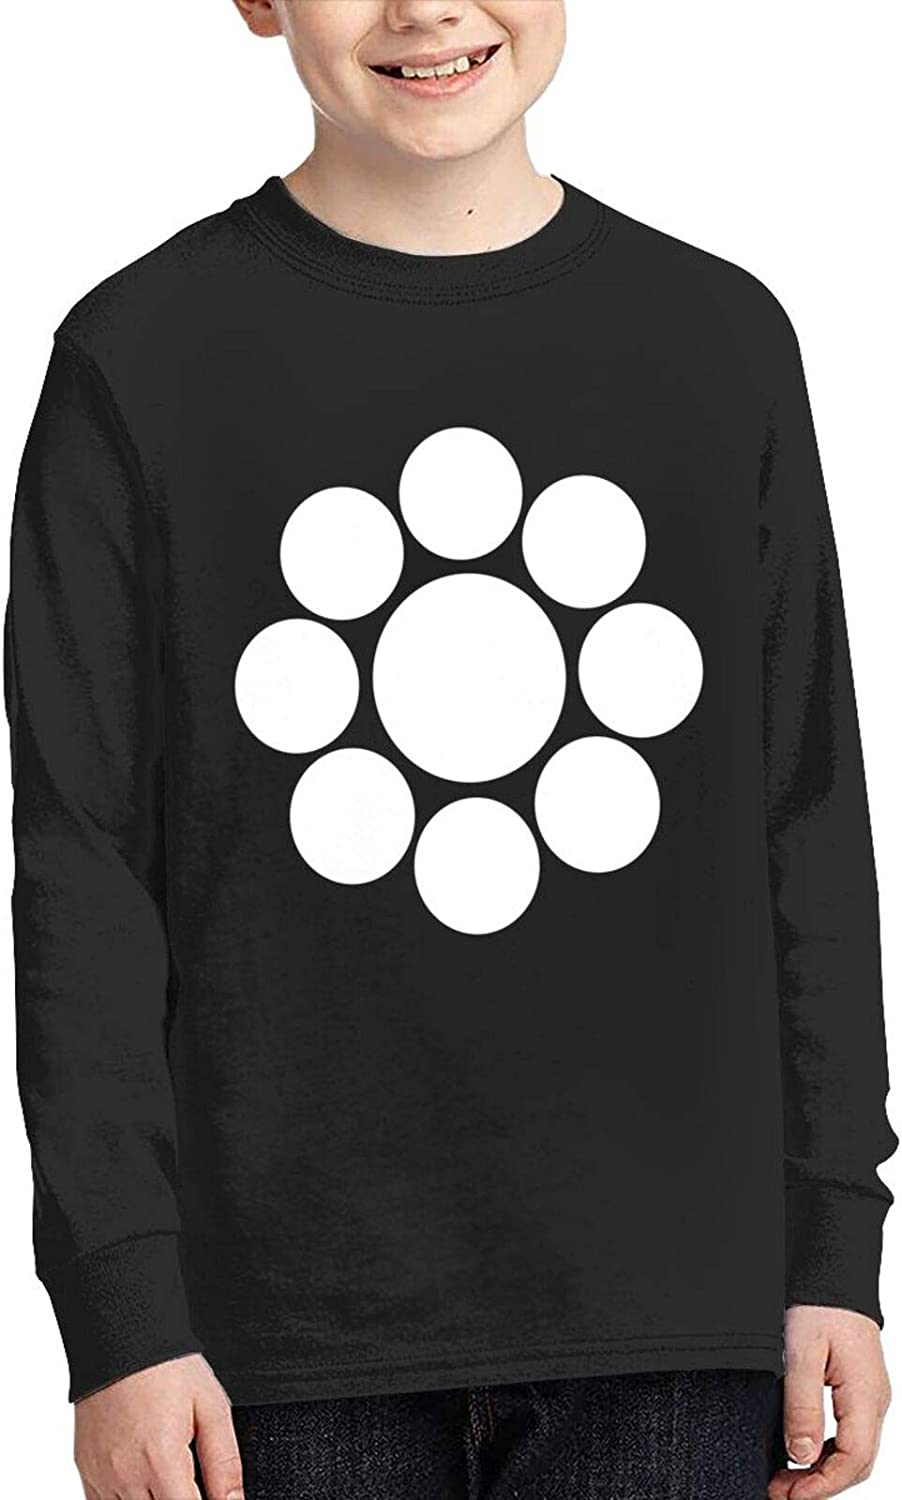 Nine White Circles Sweater Fashion and Comfortable Children's Sweater